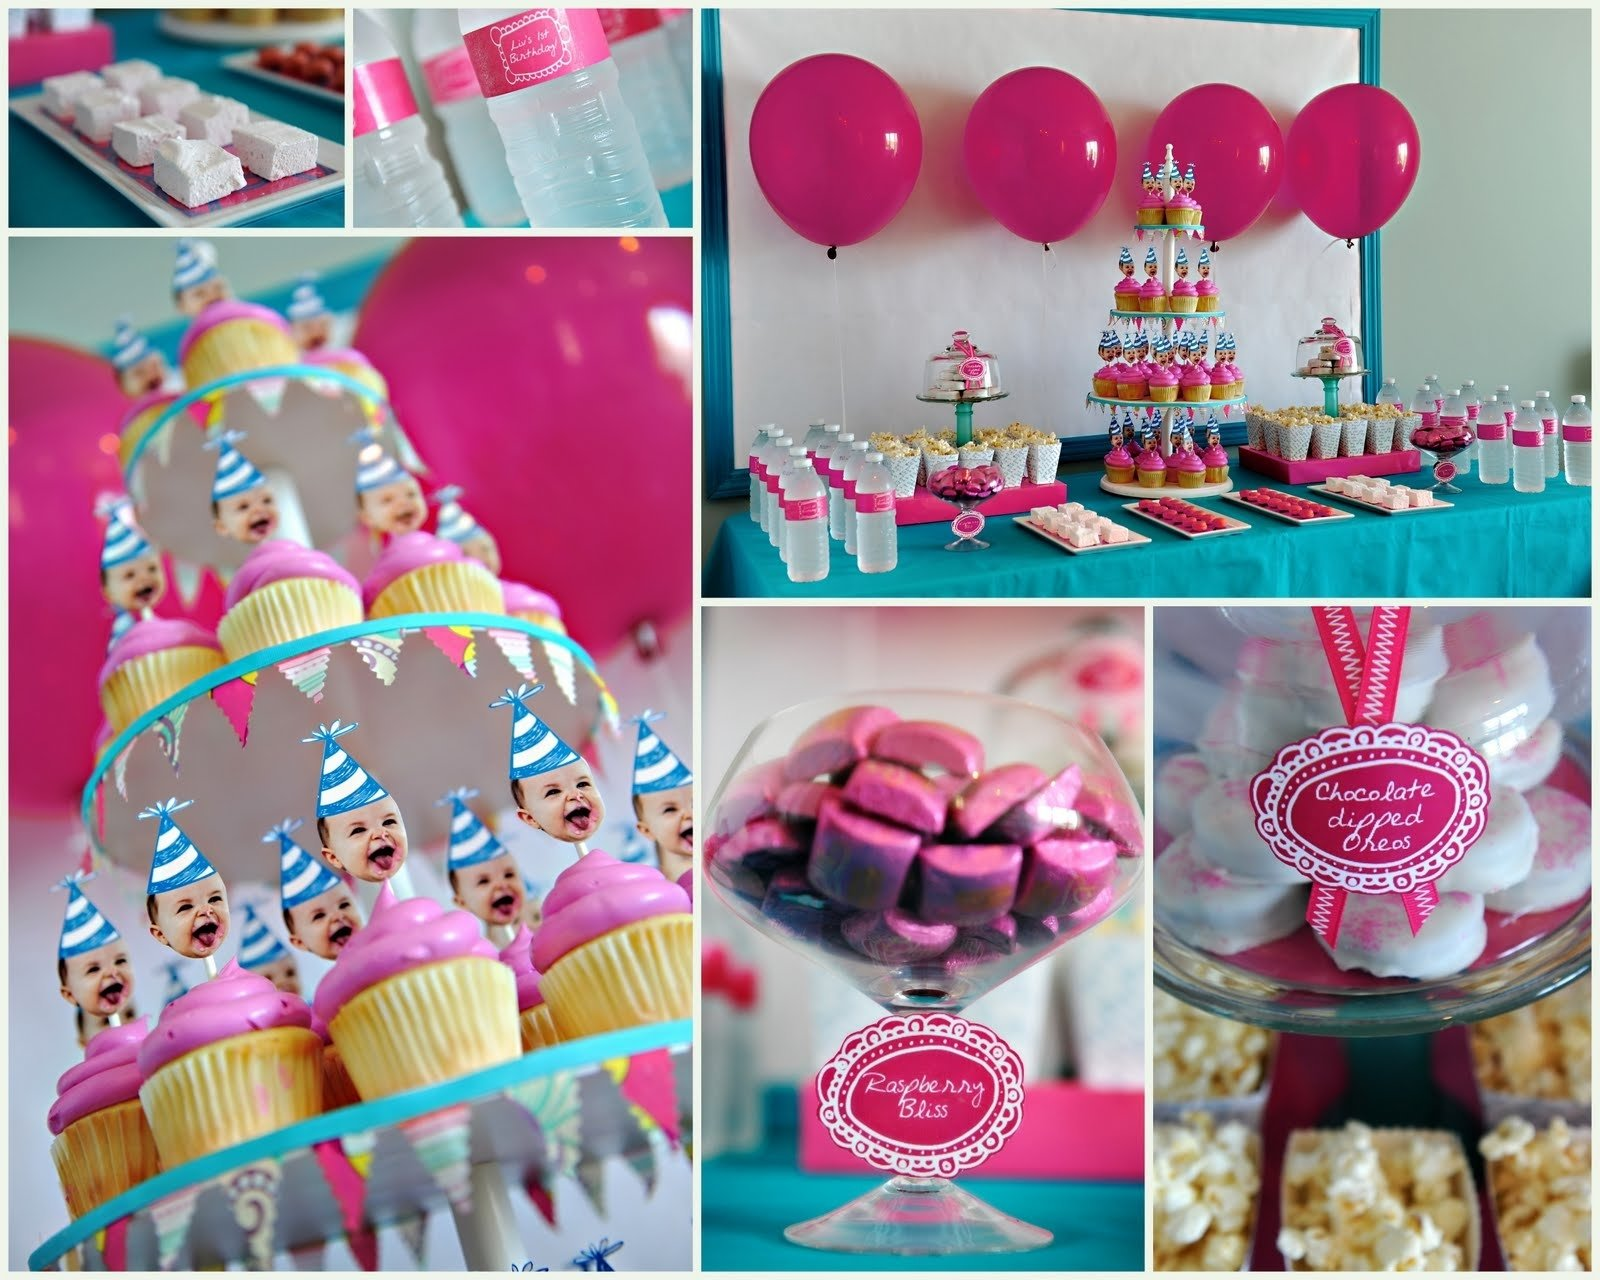 10 Great Birthday Party Ideas For 5 Year Old Girl cheap 5 year old boy birthday party ideas tags 5 year old birthday 2021